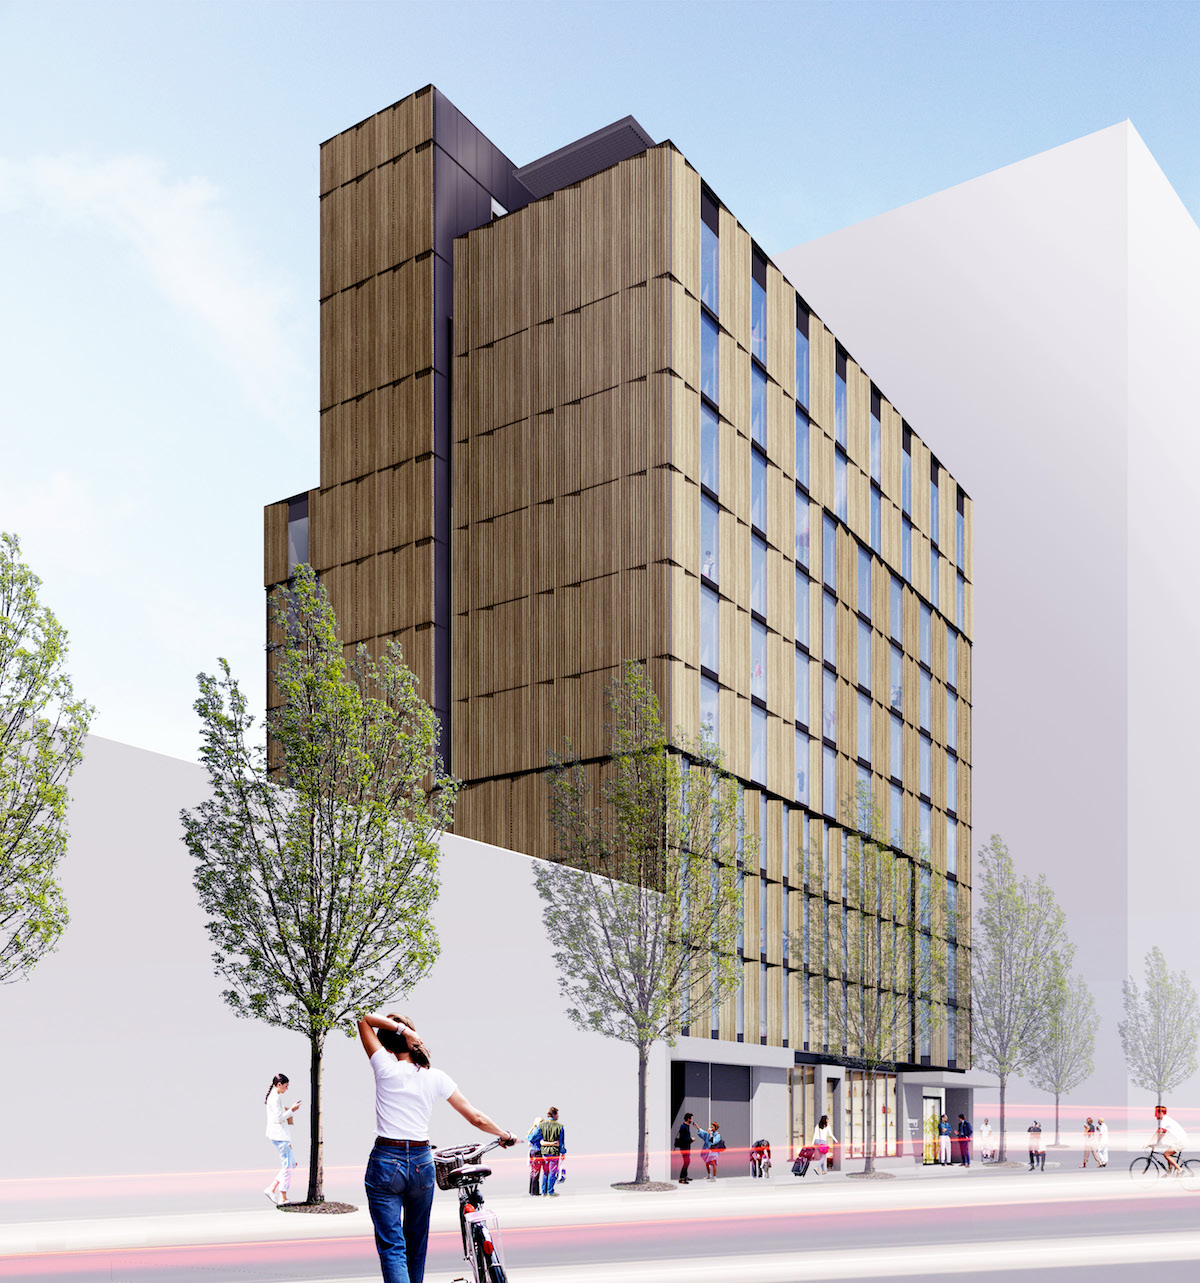 A building permit was issued for the Canopy Hotel in the Pearl by ZGF Architects & Metro Reports: Canopy Hotel Con-way Blocks 294E and 295E ...